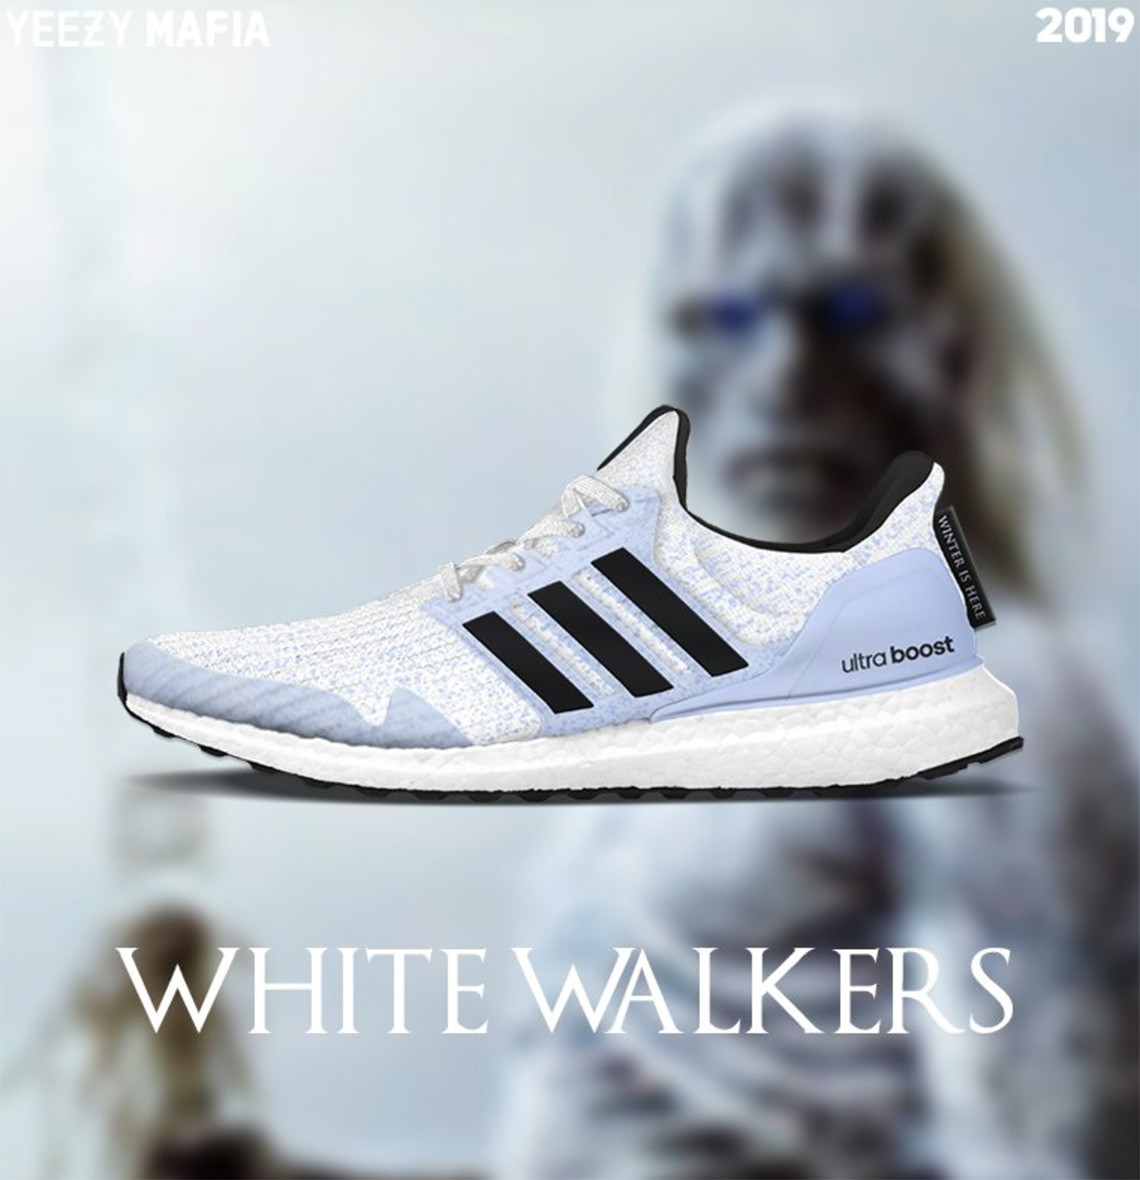 a1781b9cd Sneak Peek at  Game of Thrones  x Adidas Collaboration – Suit Up ...